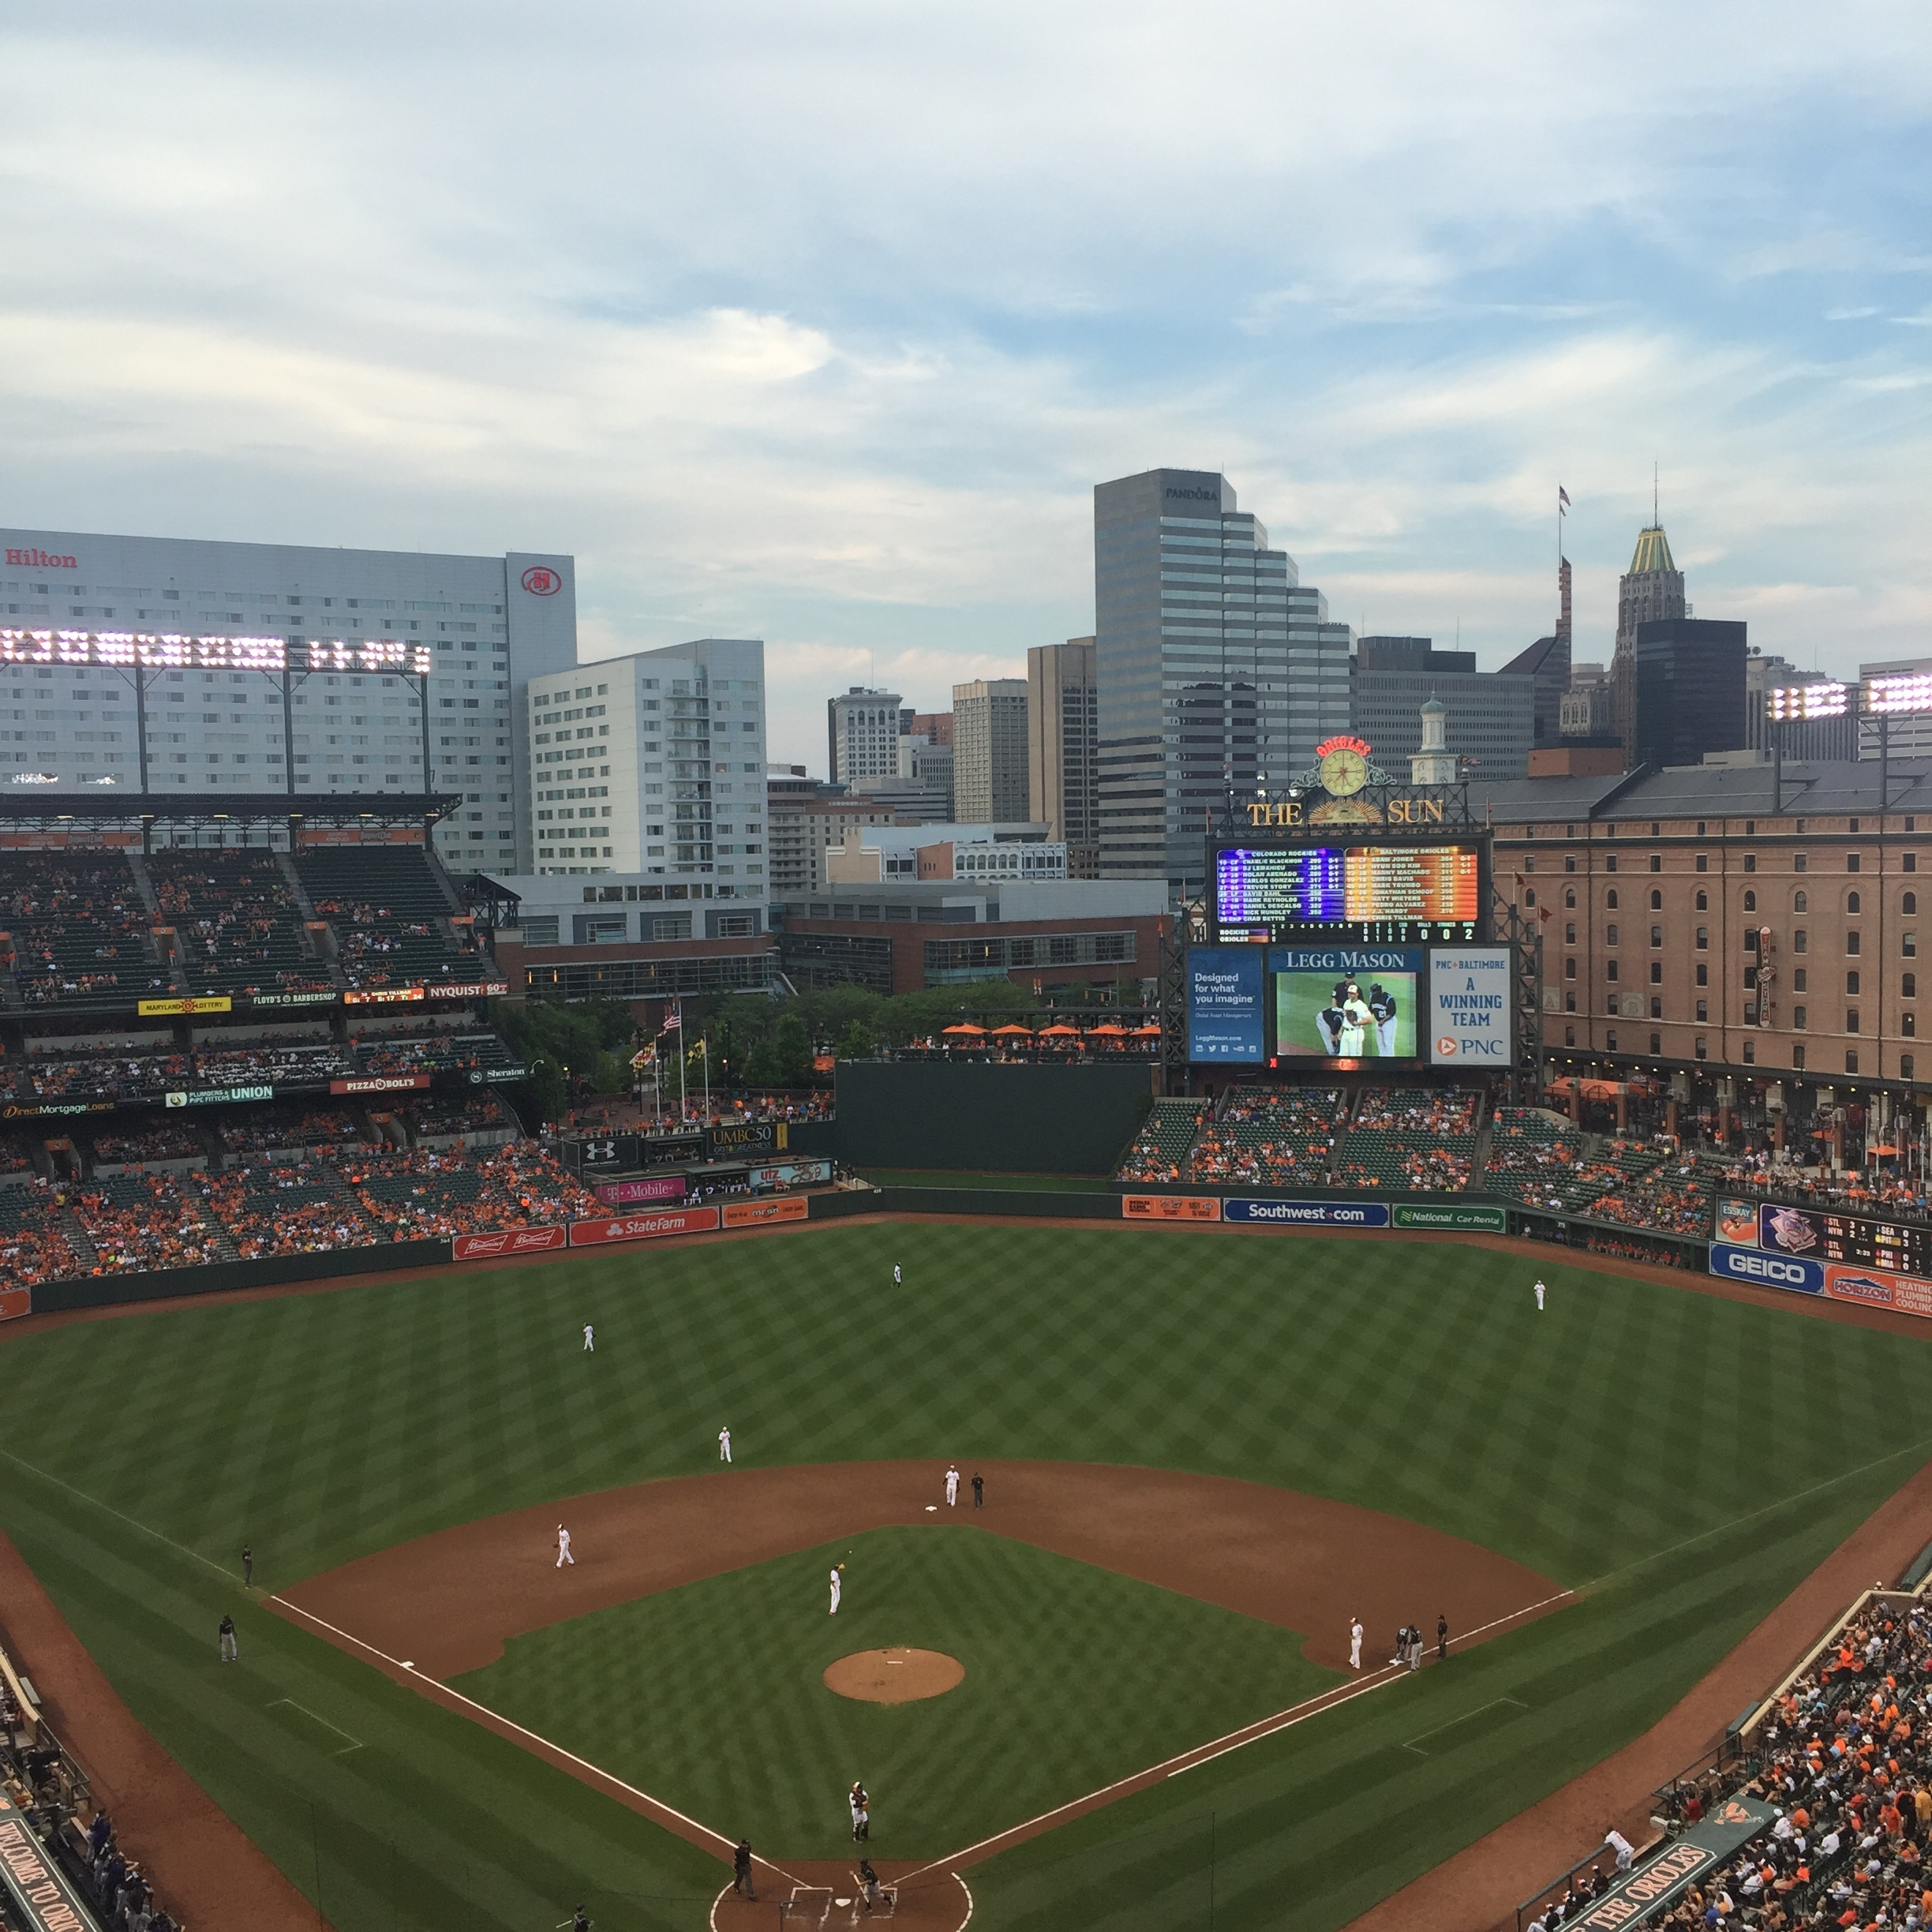 The view at our seats. Talk about #behindhomeplate